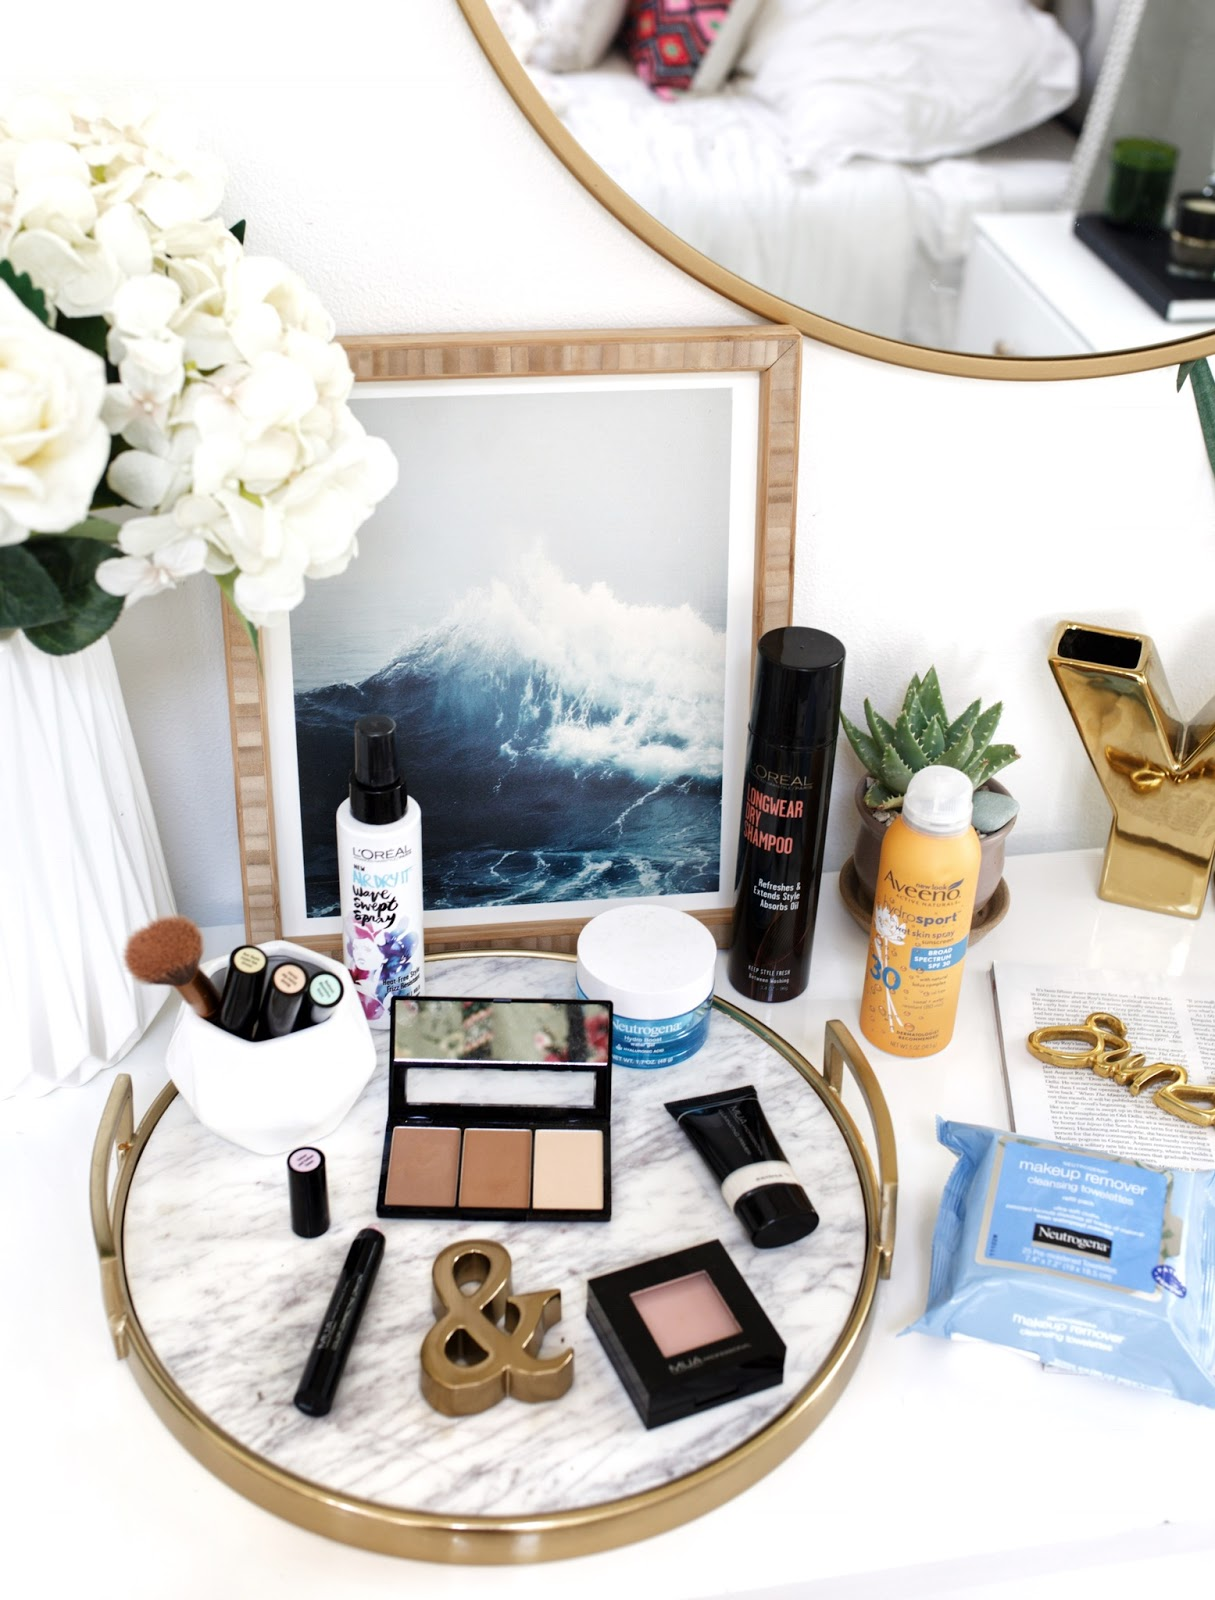 Affordable High-Quality Beauty Products at CVS Pharmacy